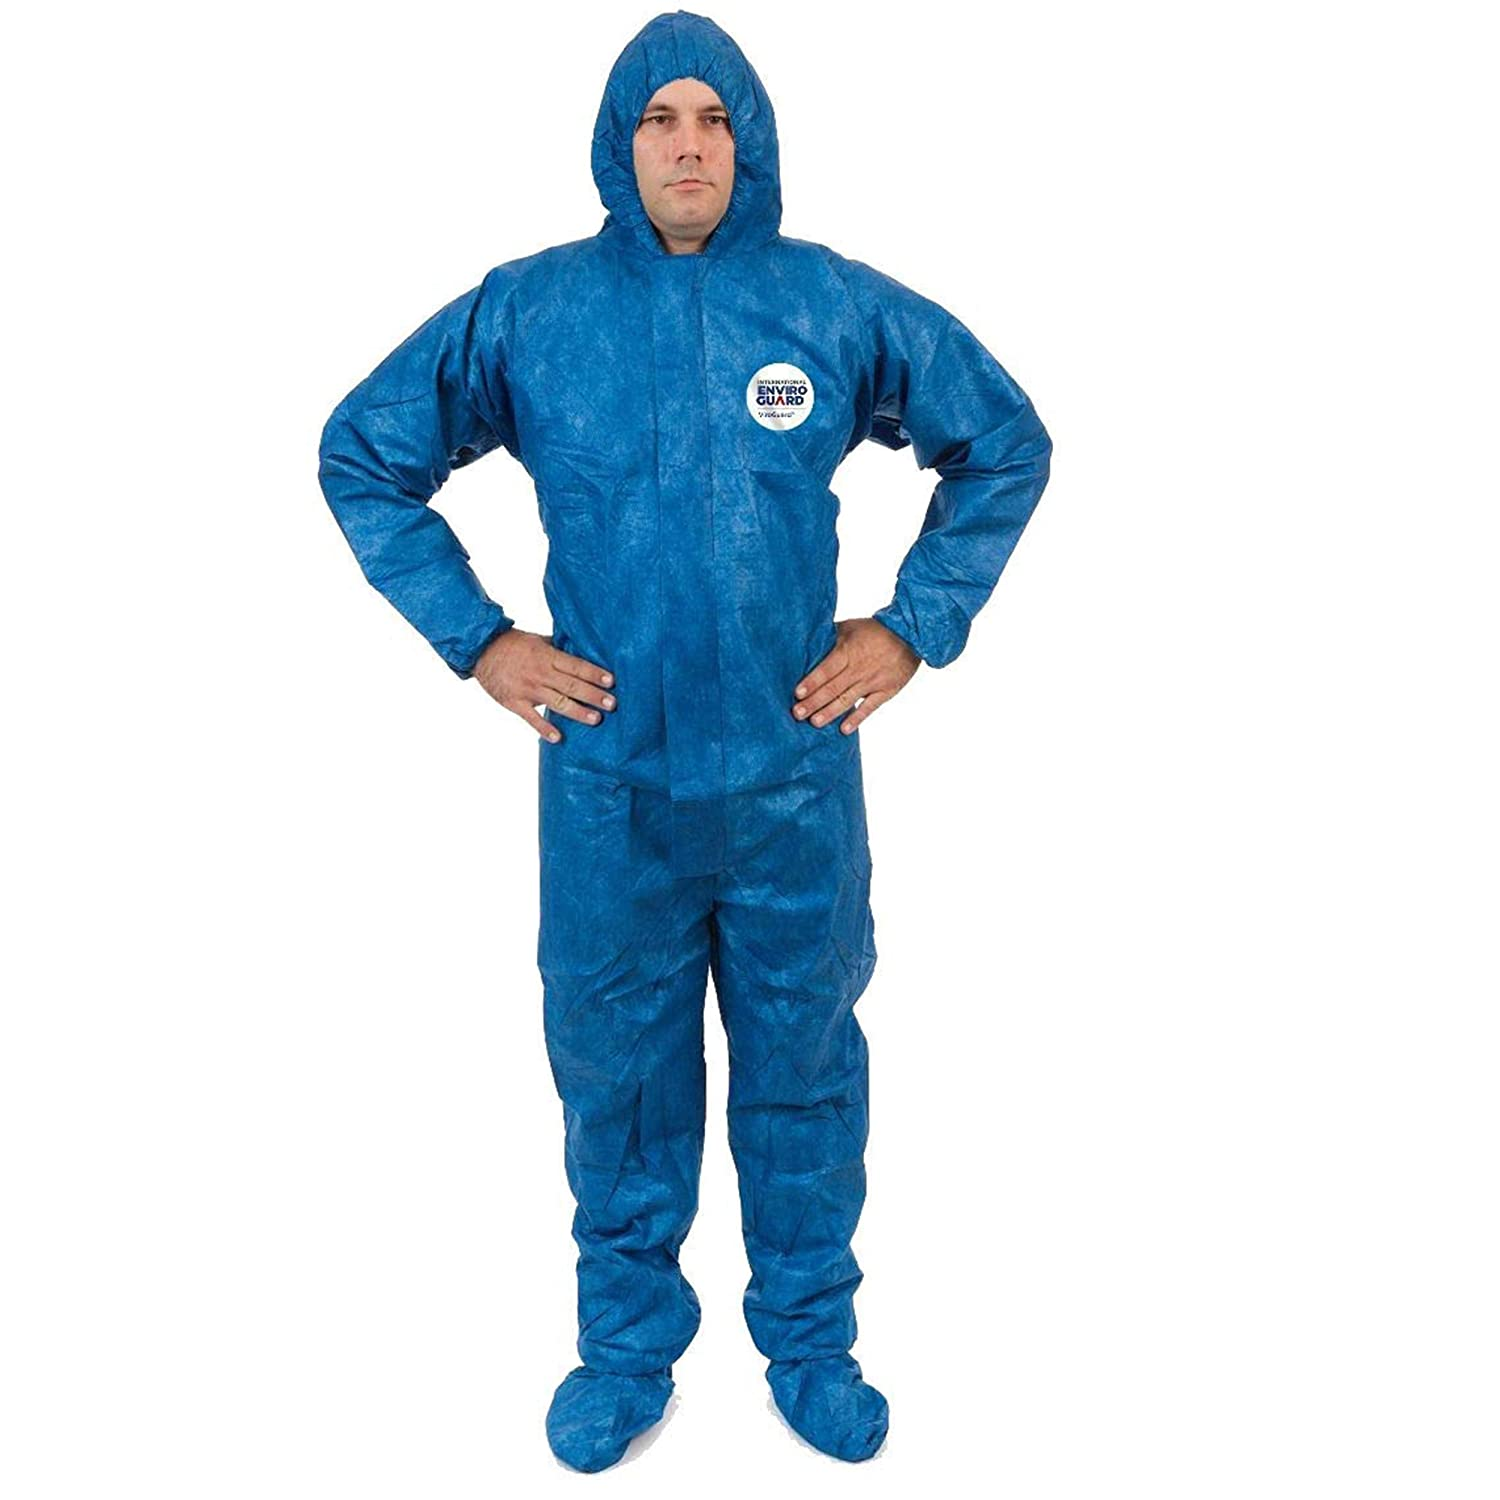 and Cleaning ViroGuard Disposable Coveralls Biohazard Suit with Hood Comfortable Full Body Splash Suit Hazmat Protection for Medical 3XL, Elastic Wrist, Hood /& Boots Chemical Case of 25